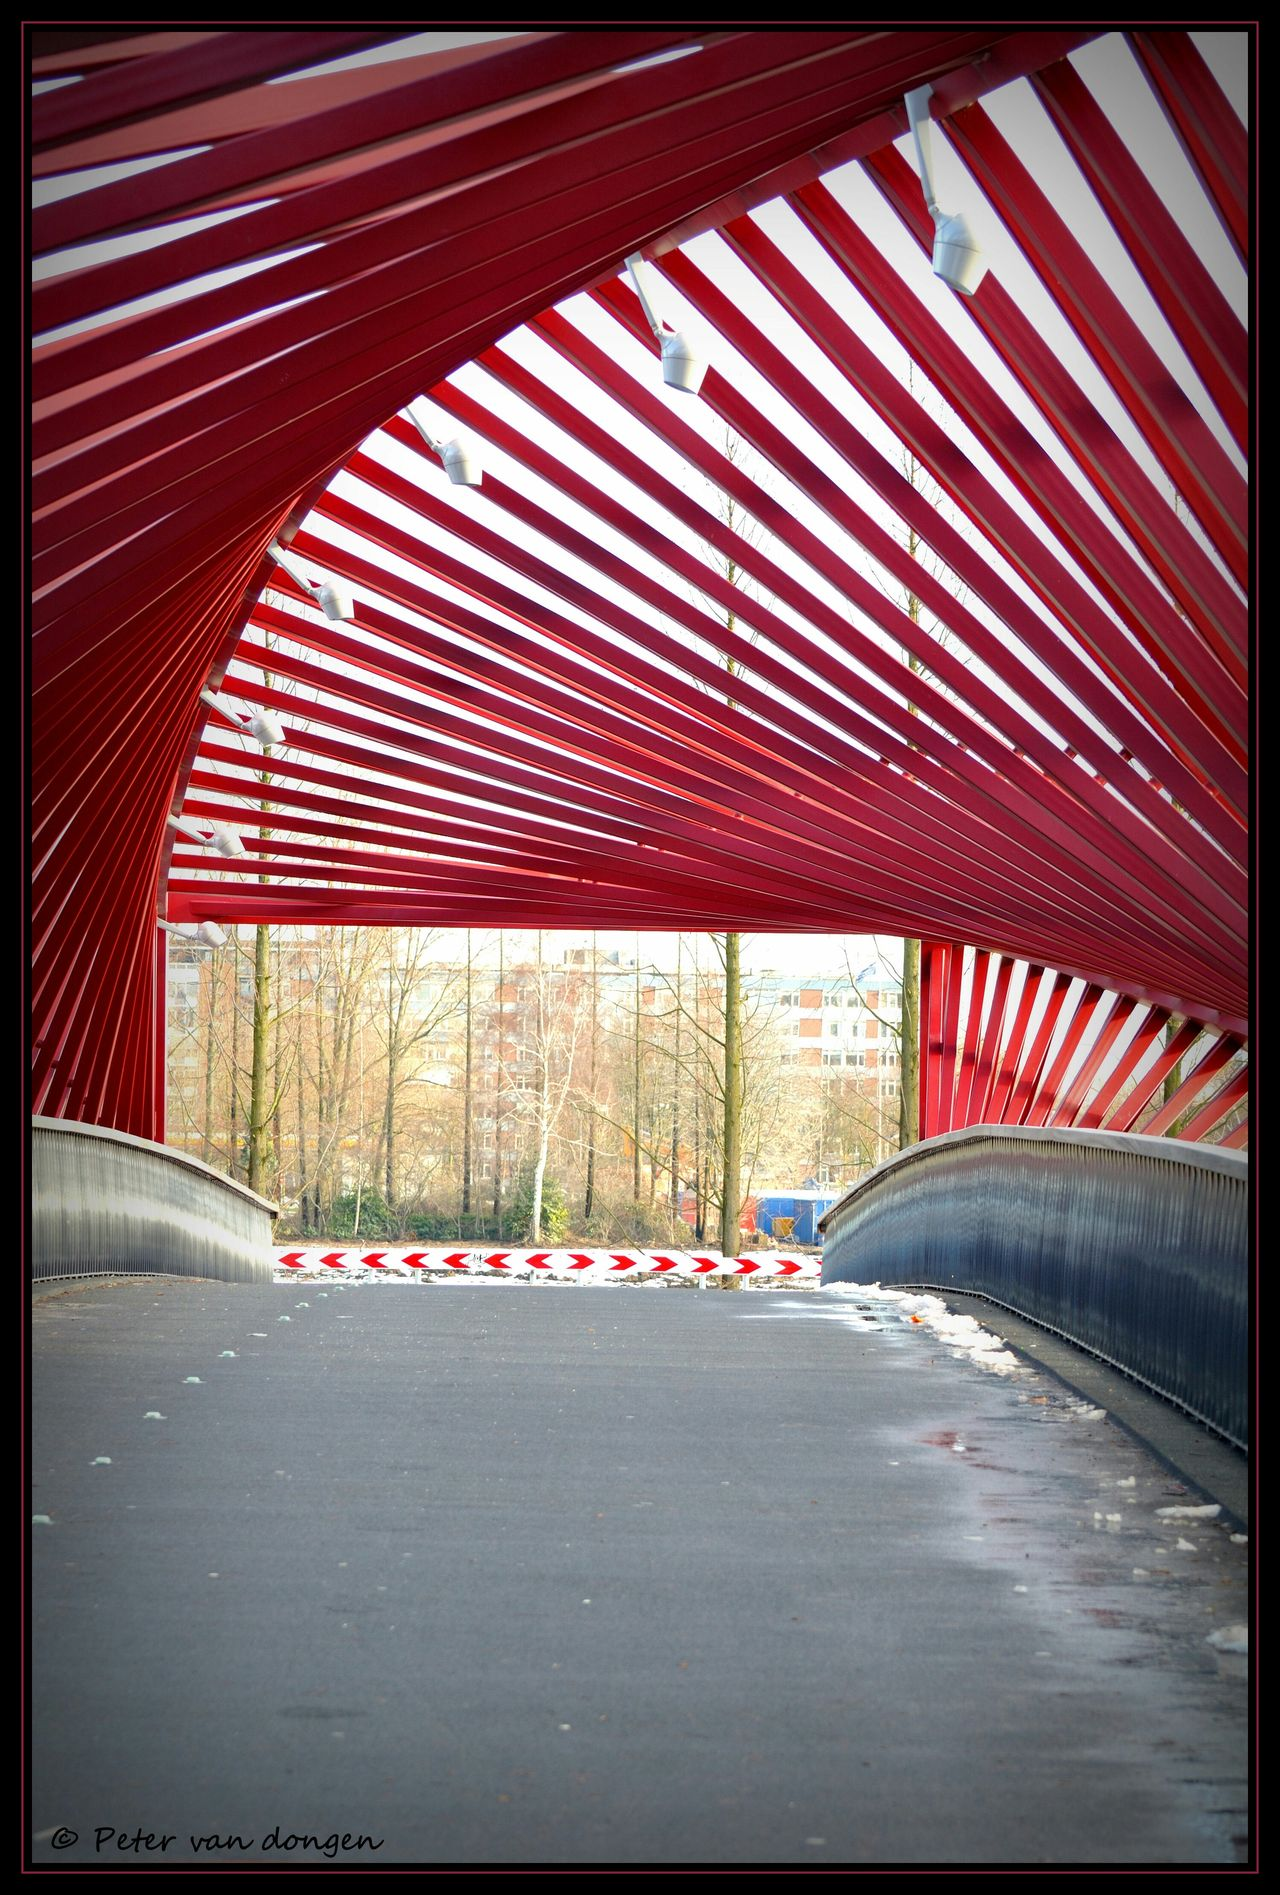 Architecture Vlaardingen Bridge Wokkel Petervdongen Red Road